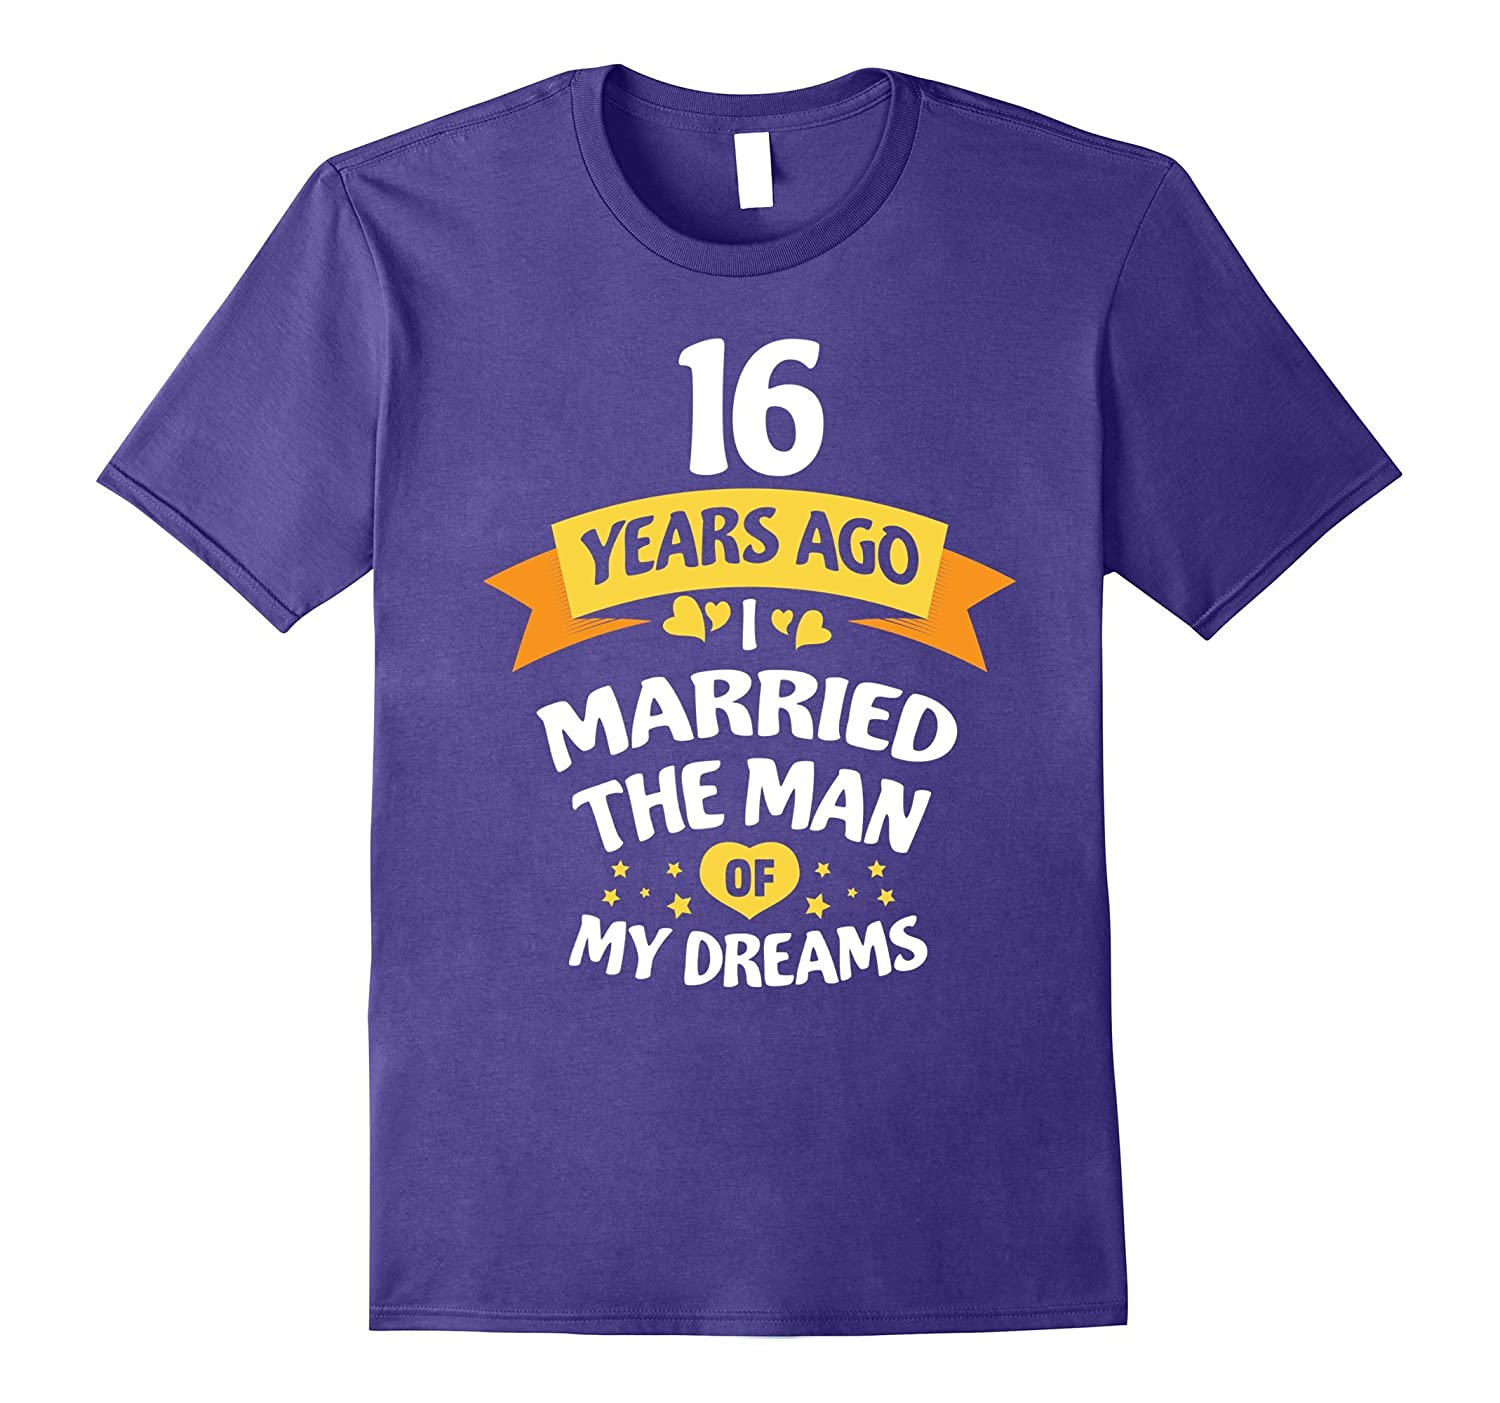 16th Wedding Anniversary Gift Ideas For Her: 16th Wedding Anniversary Gift For Her